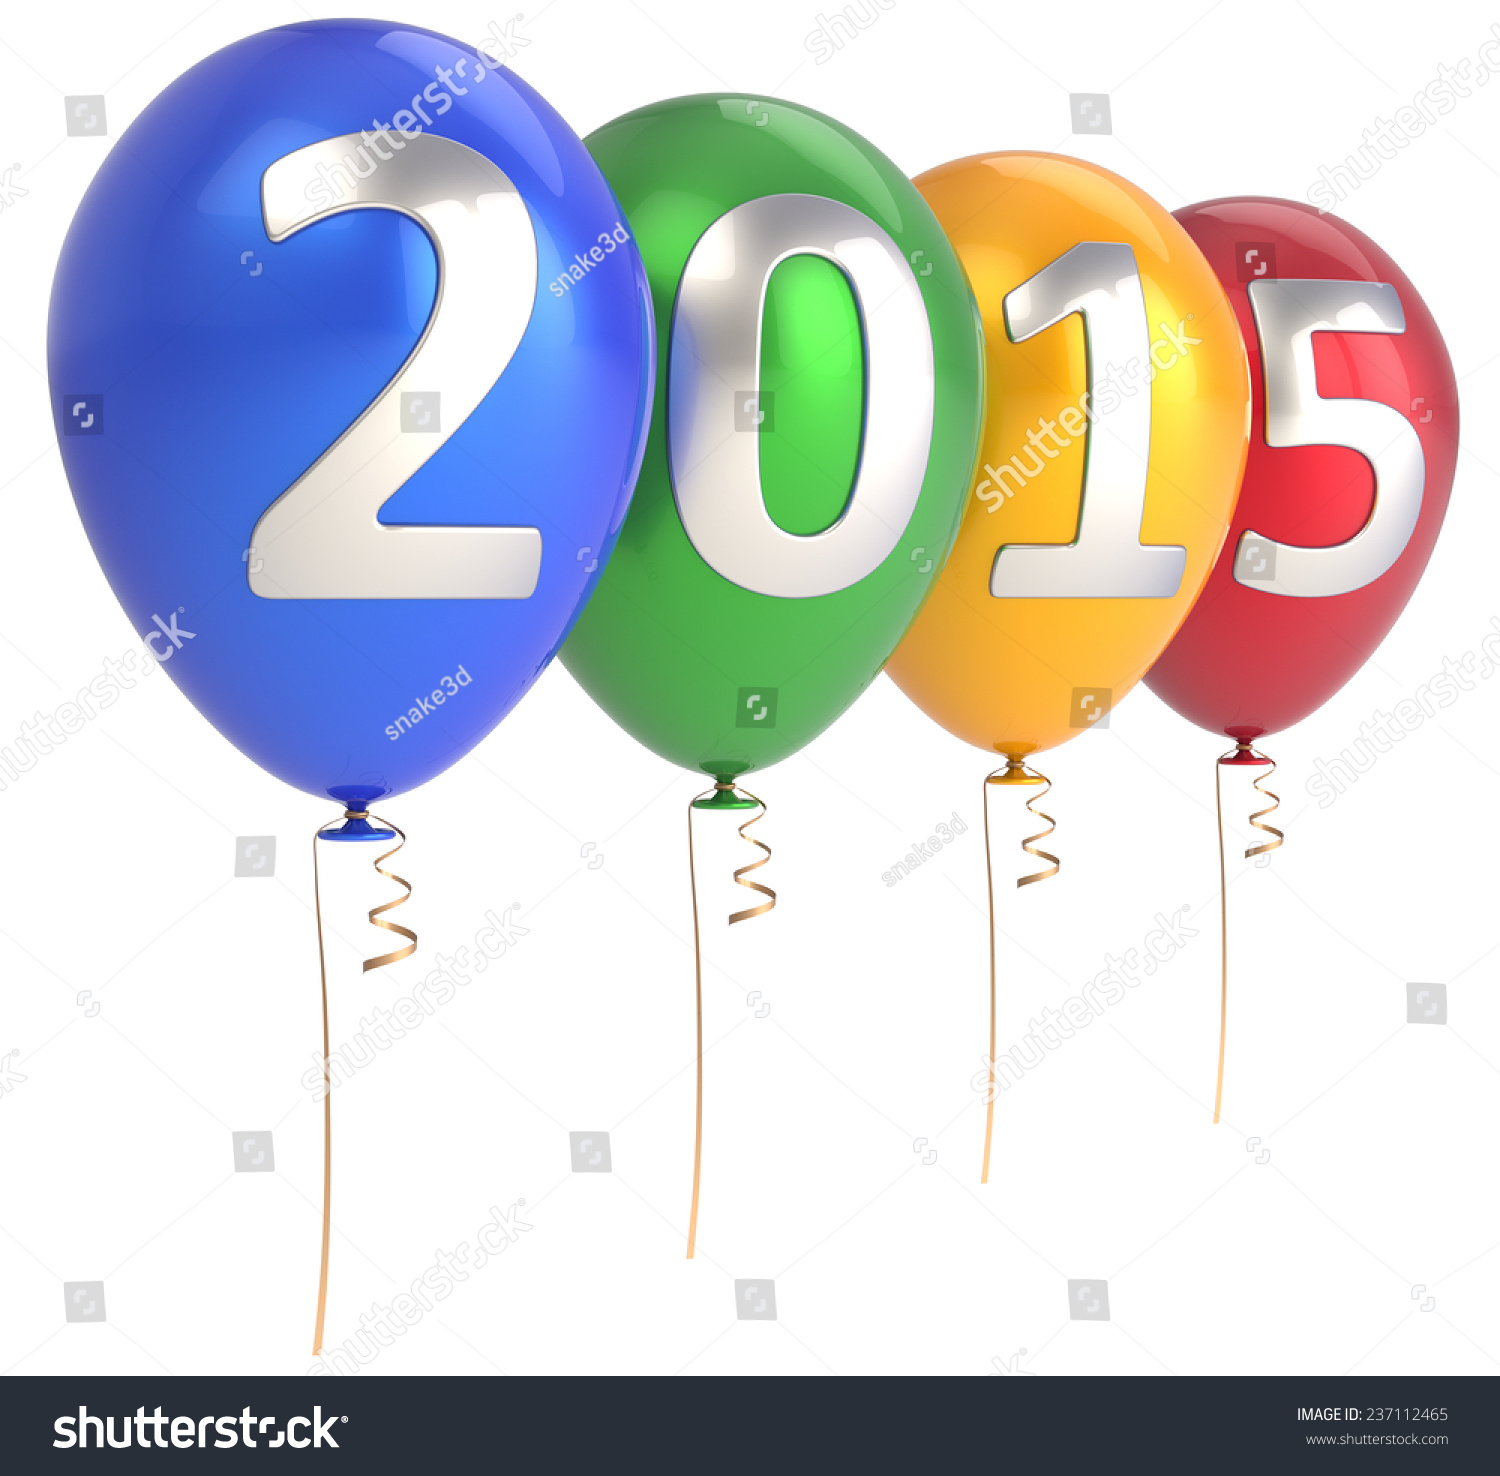 happy new year 2015 balloons party decoration celebrate helium balloon colorful future beginning calendar